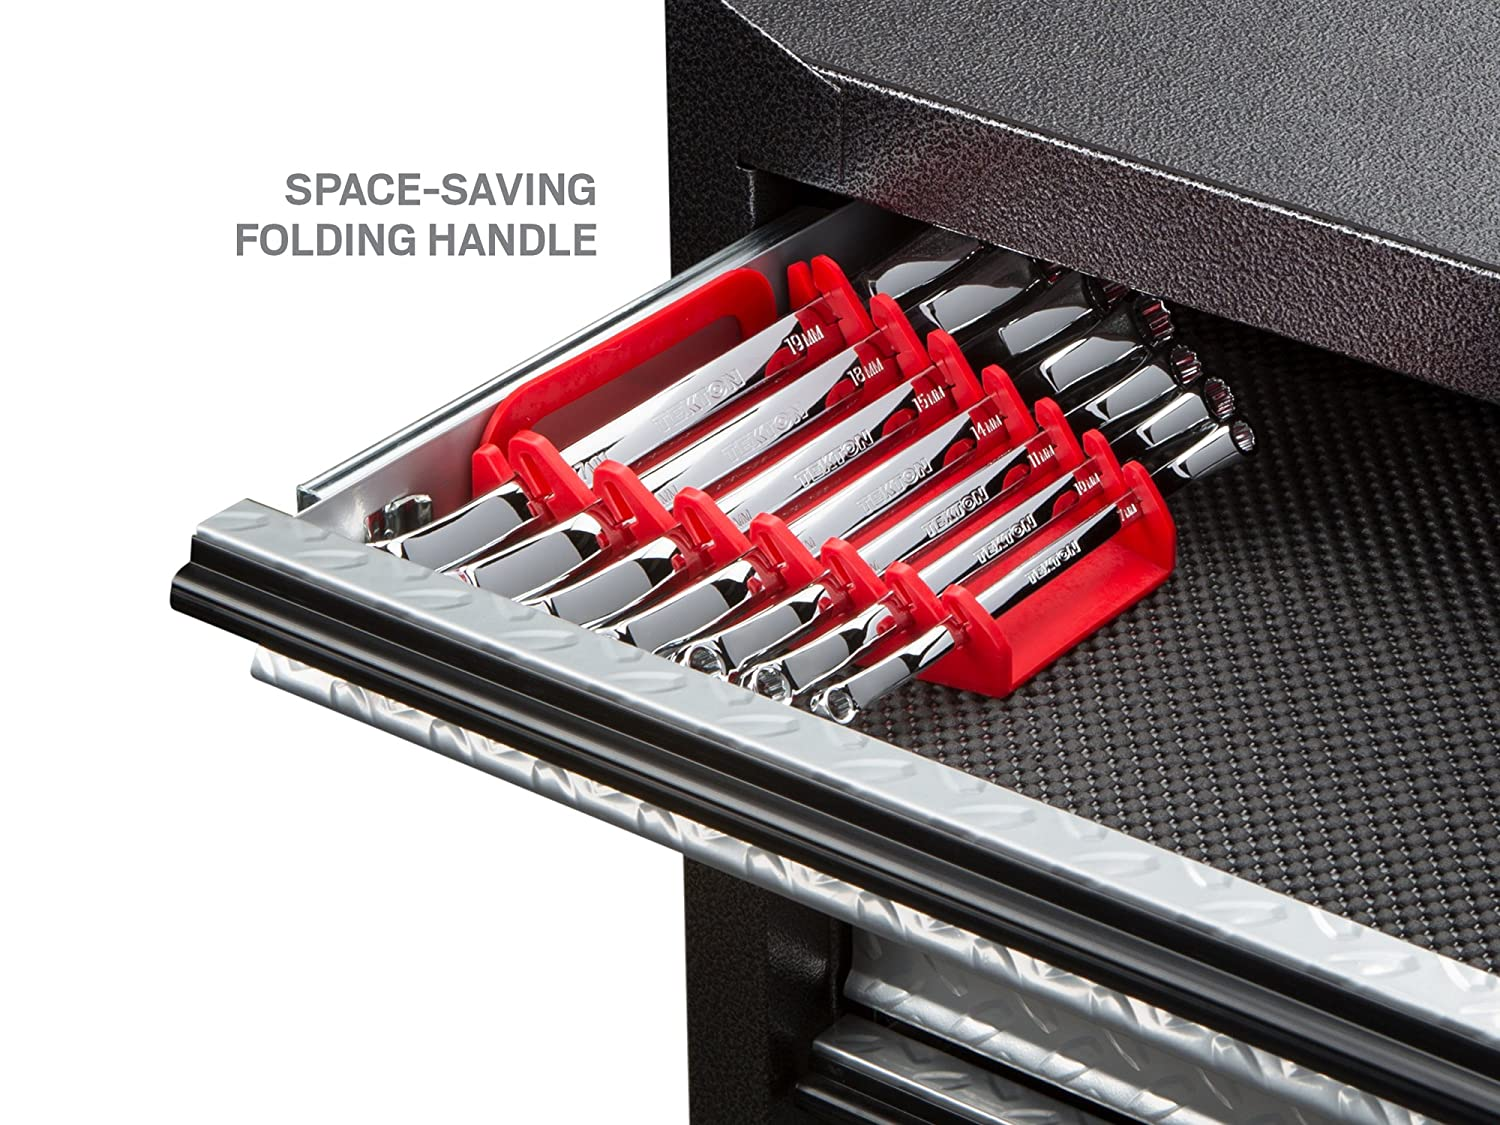 WBE24407 19 mm 6 mm Metric 7-Piece TEKTON 45-Degree Offset Box End Wrench Set with Store and Go Keeper